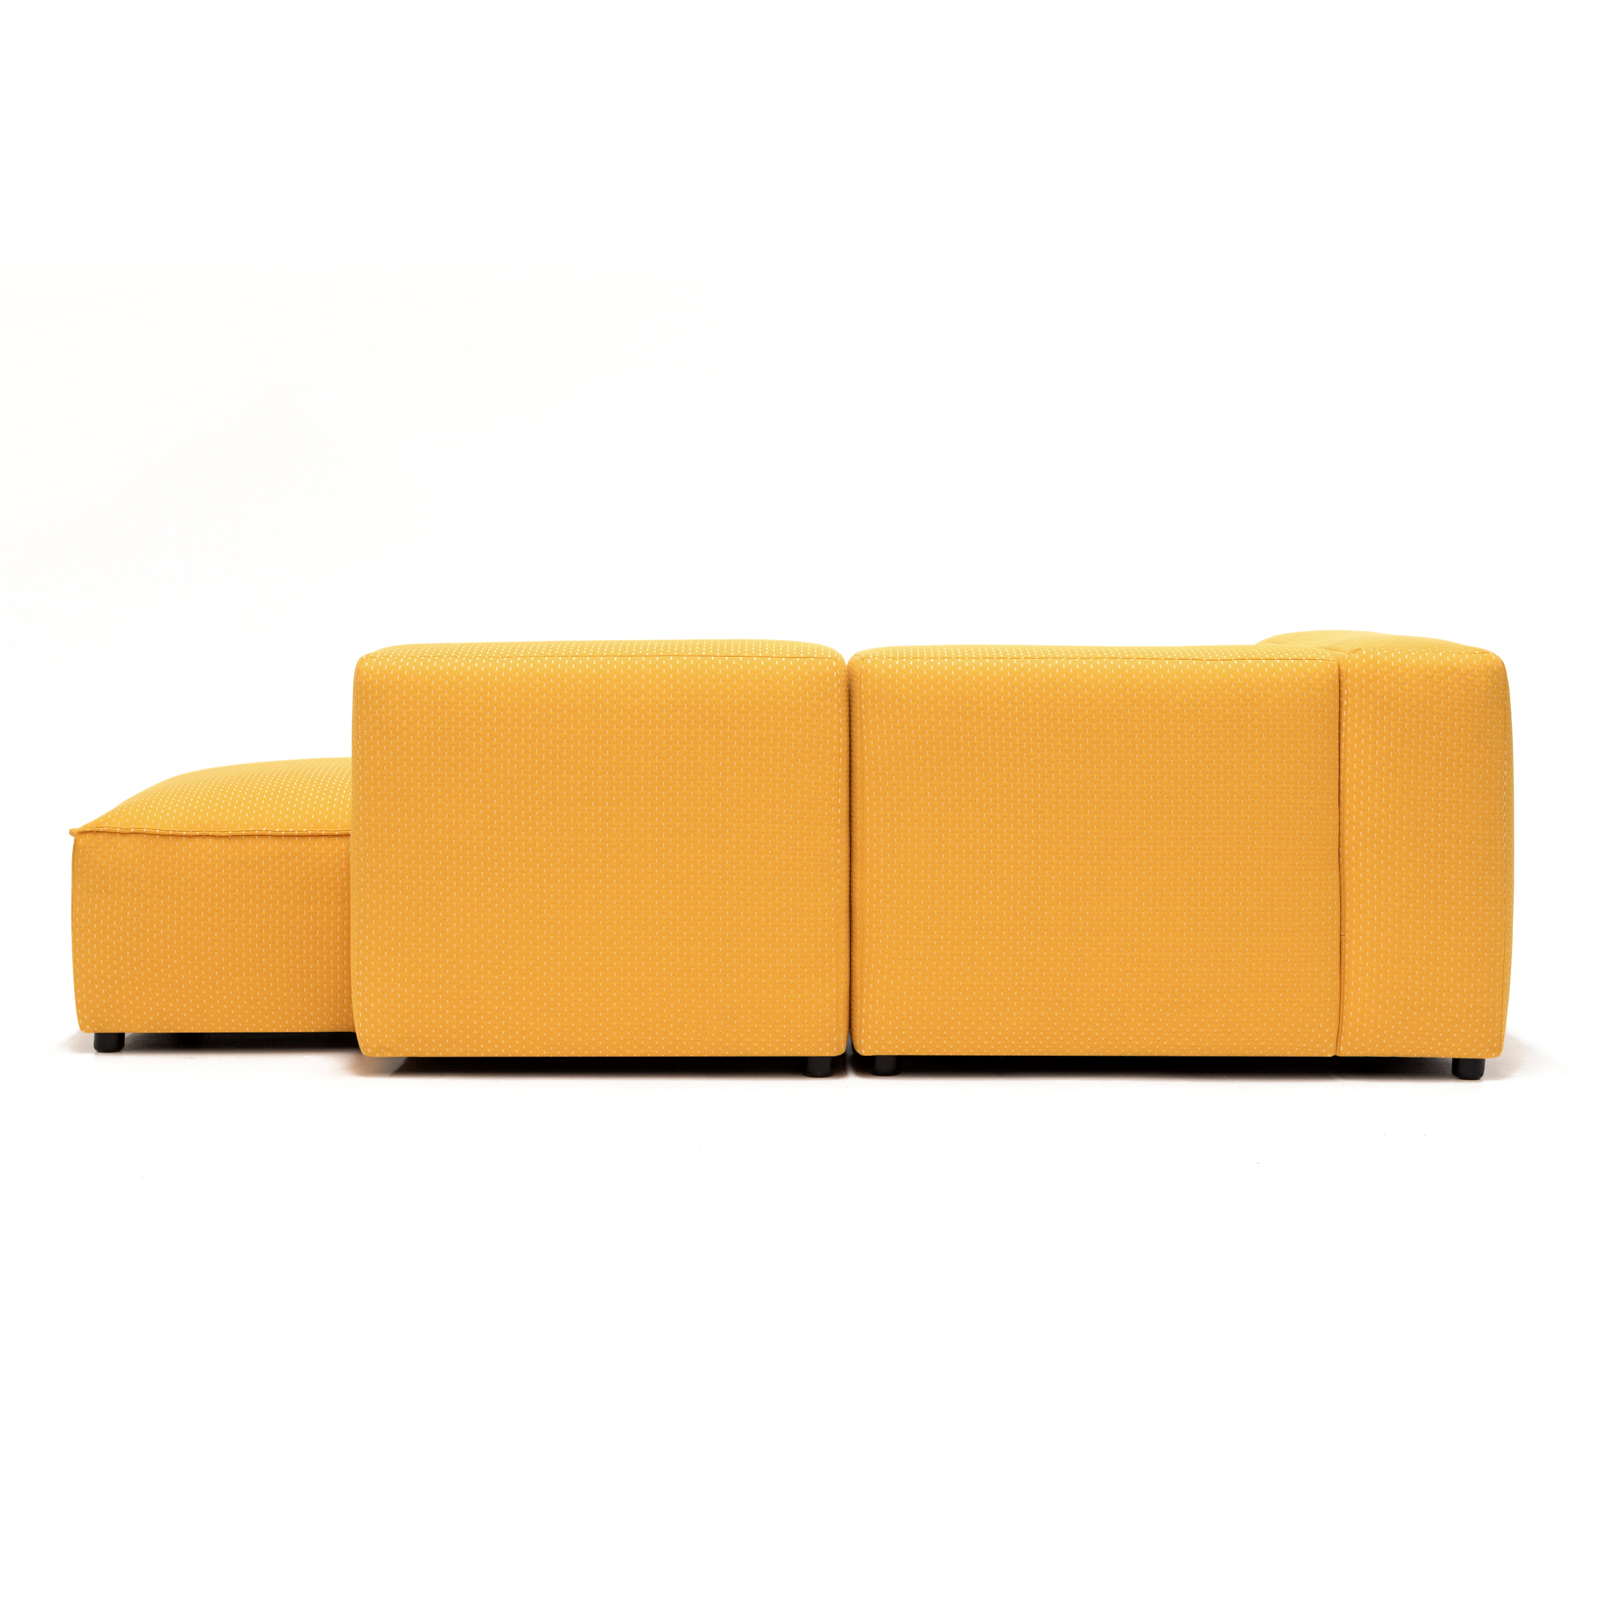 Permanent Future Easey Sofa Chasie Left Zoom Yellow Pf Sf Ea Ch L Zy Rear View